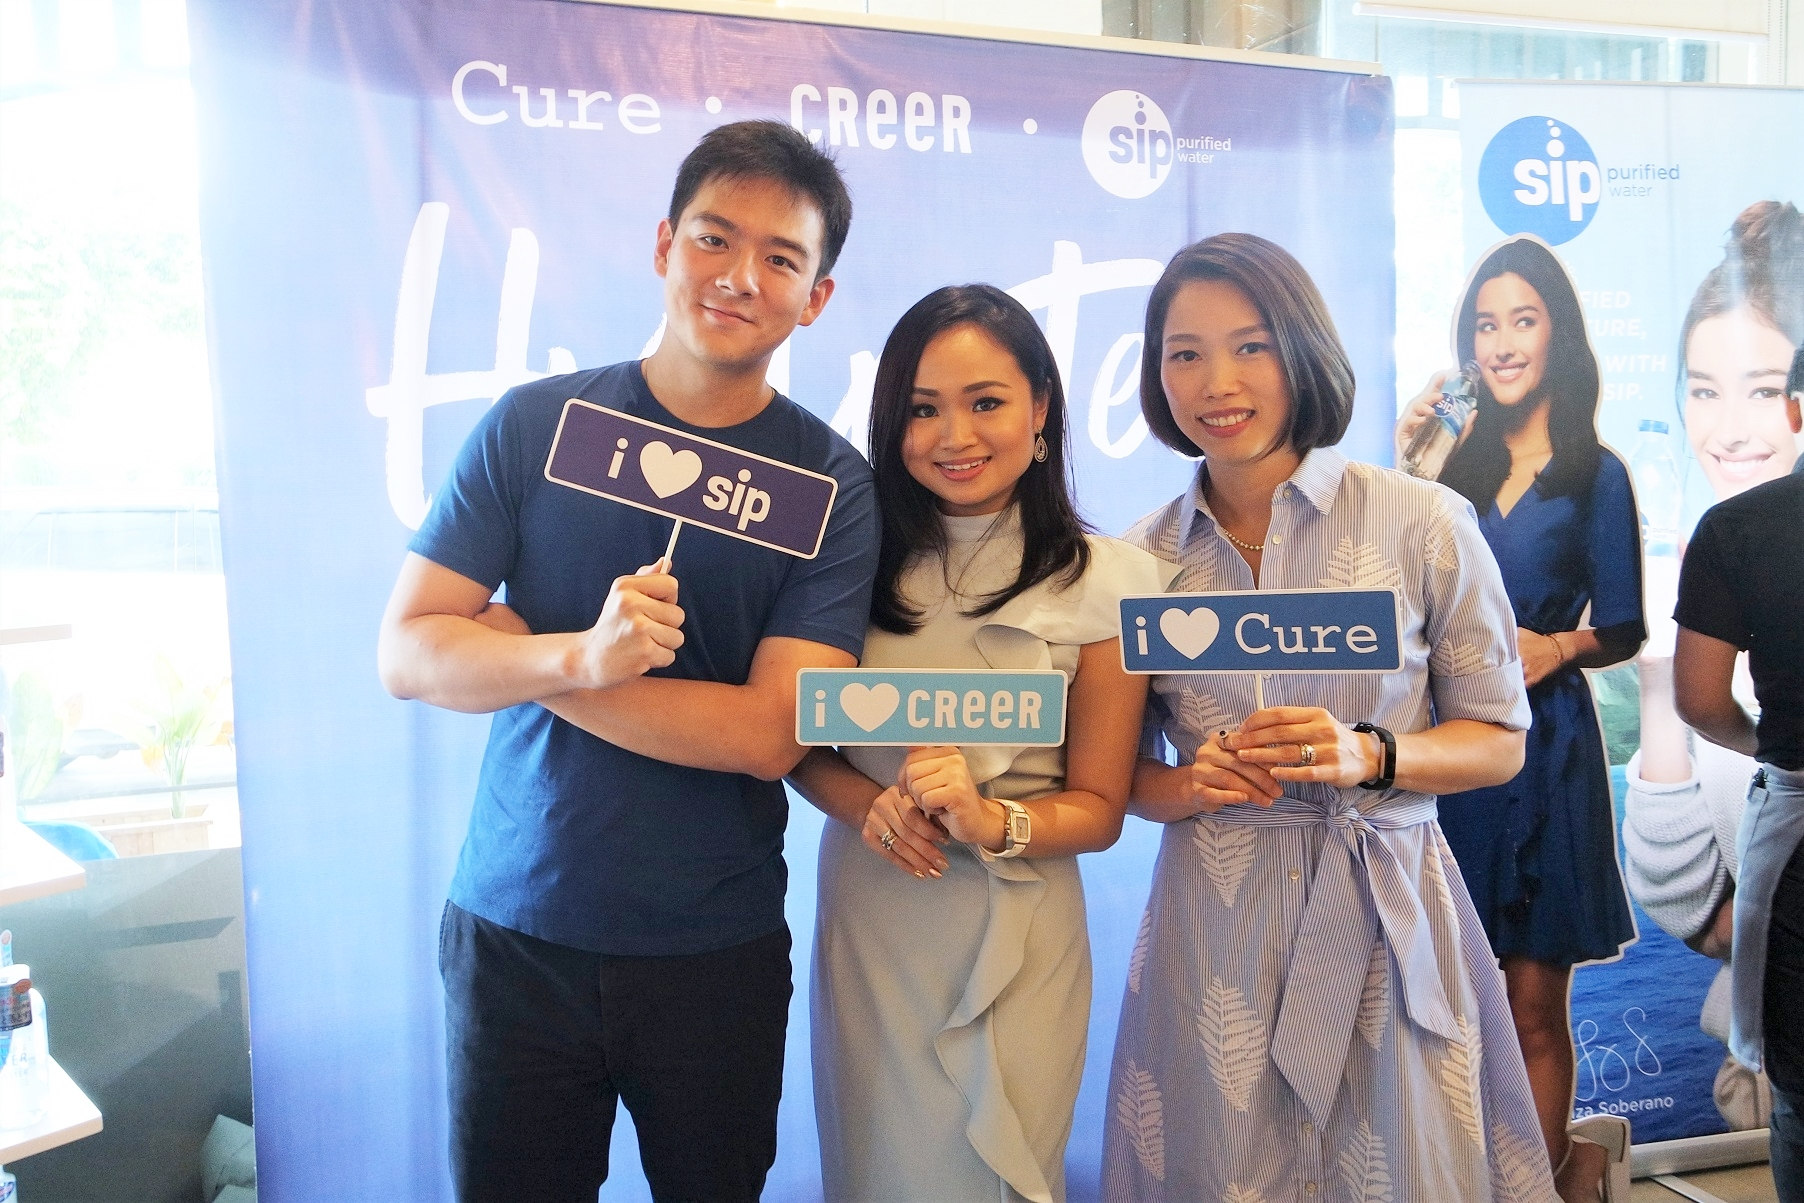 Charles Stewart Lee, Marj Sia, and Cheryl Tan Chua at the Cure, Creer, and Sip event.